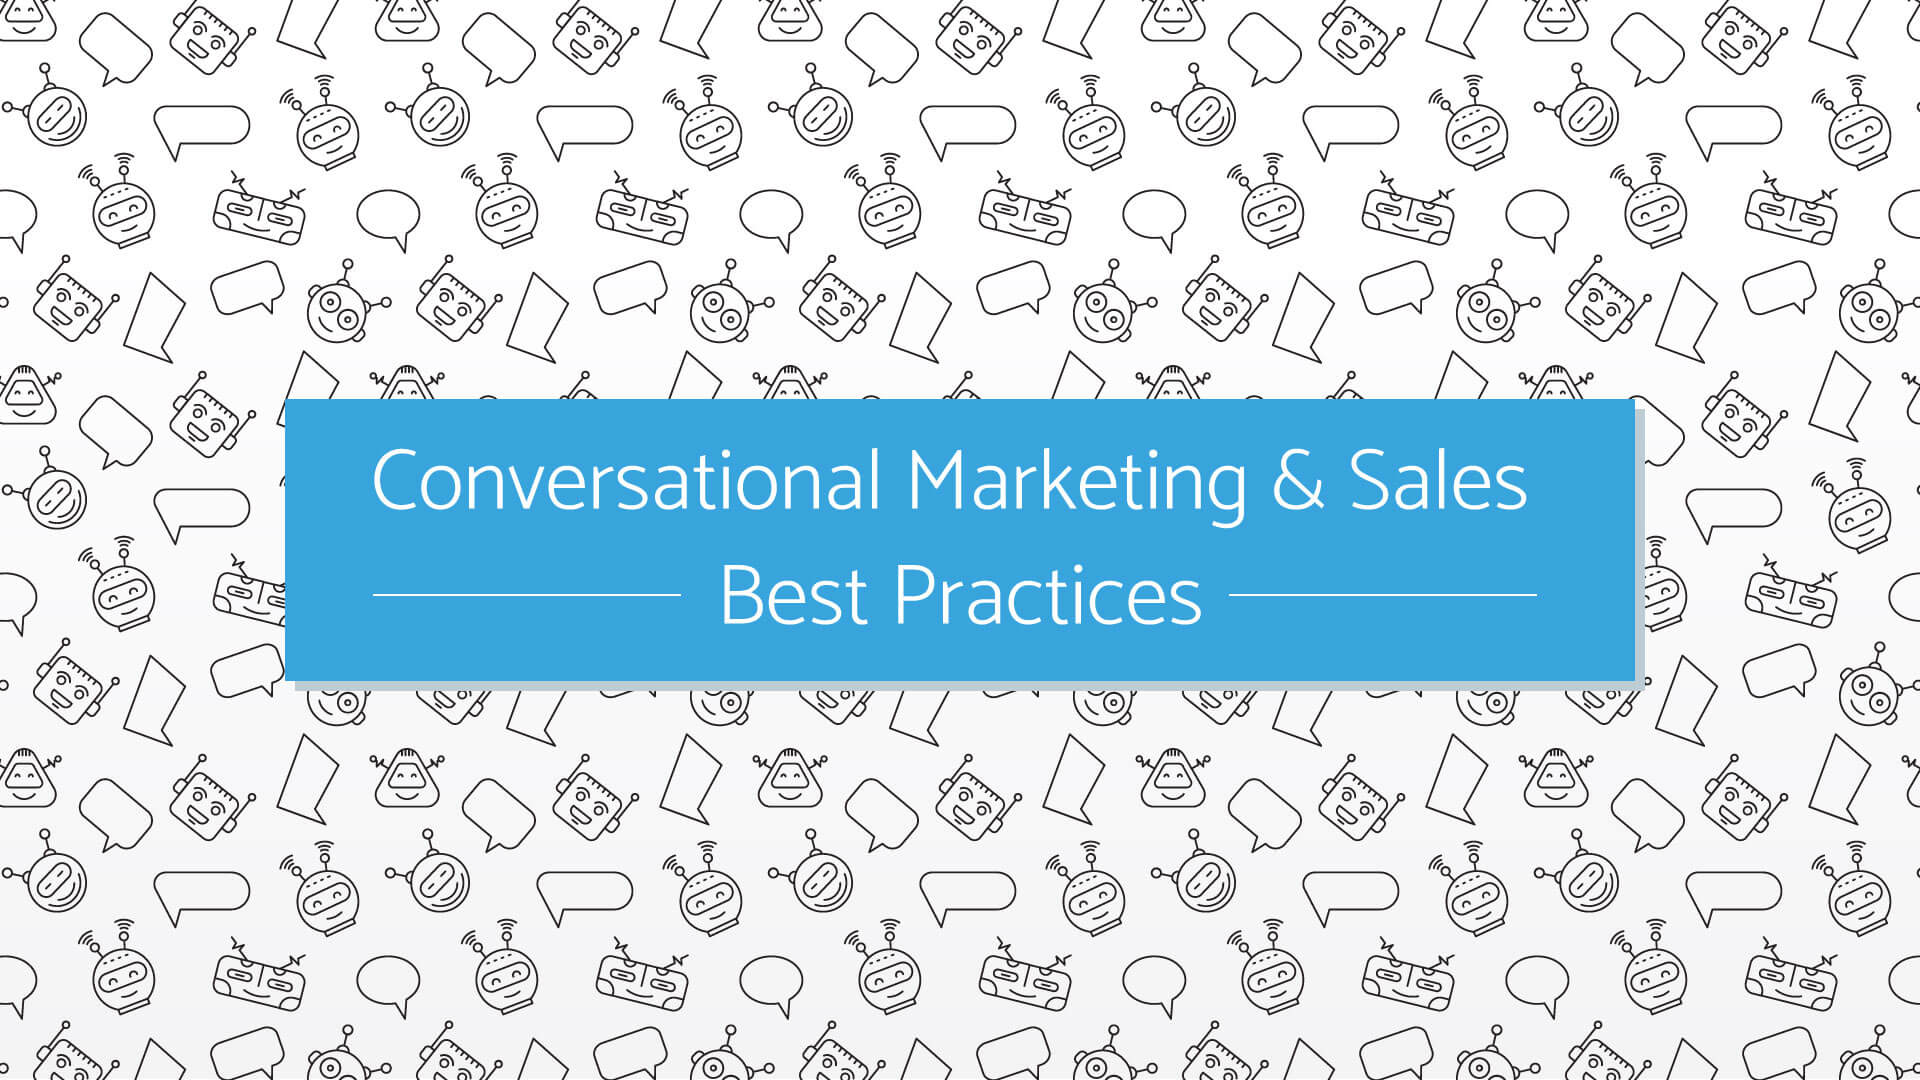 Best Practices for Getting Started with Conversational Marketing & Sales